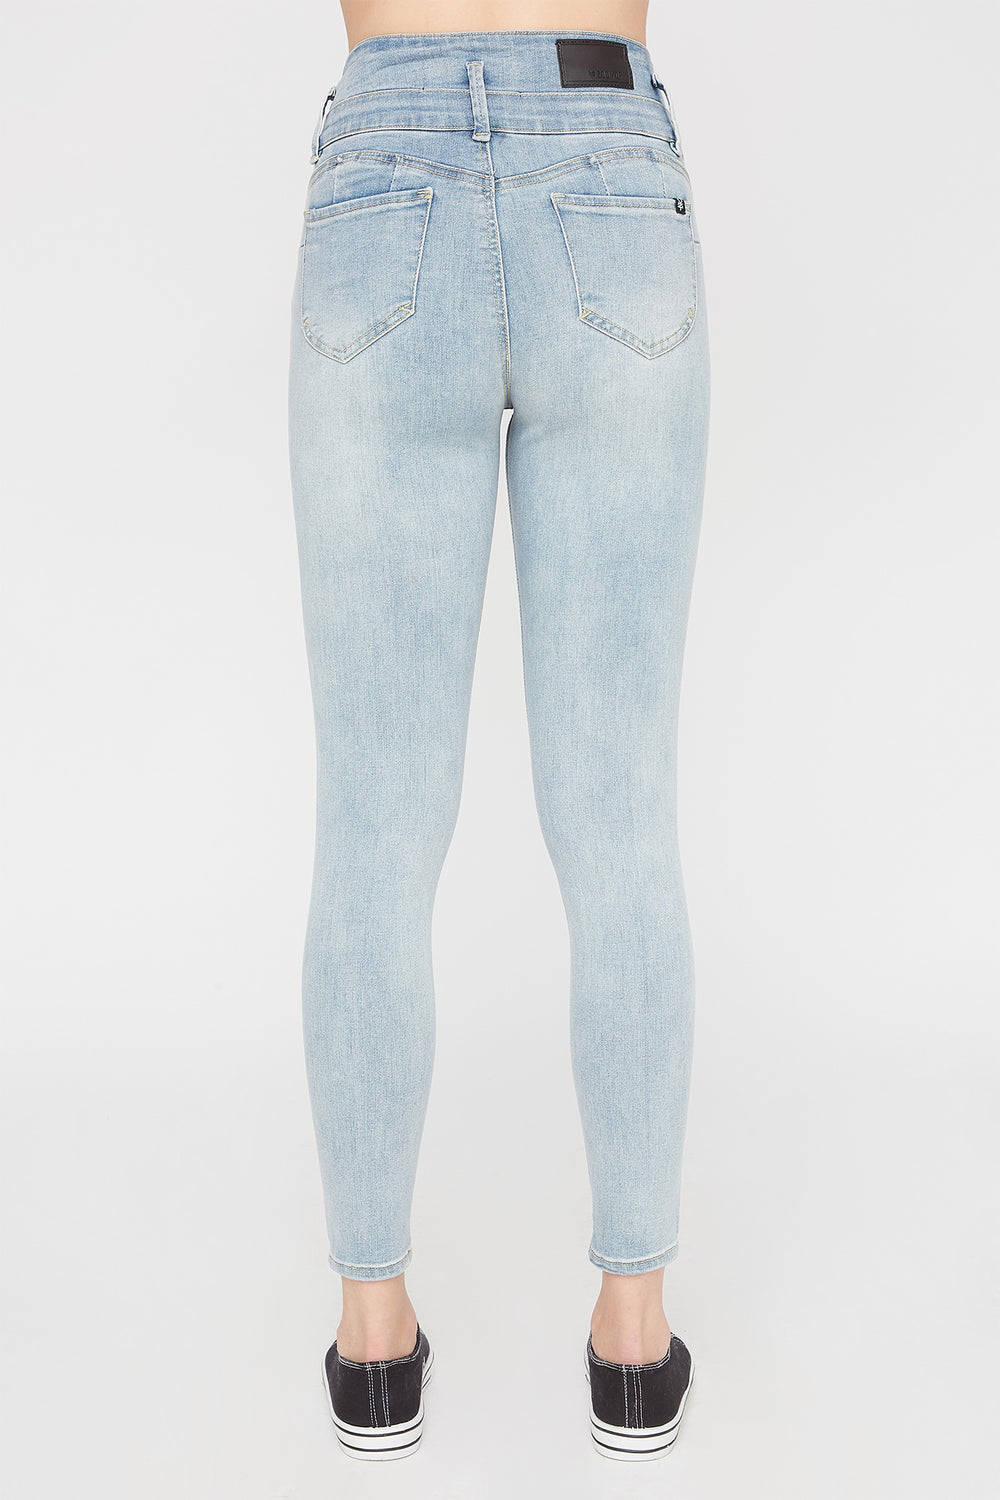 Zoo York Womens Light Wash 3-Tier Curvy Jeans Light Denim Blue